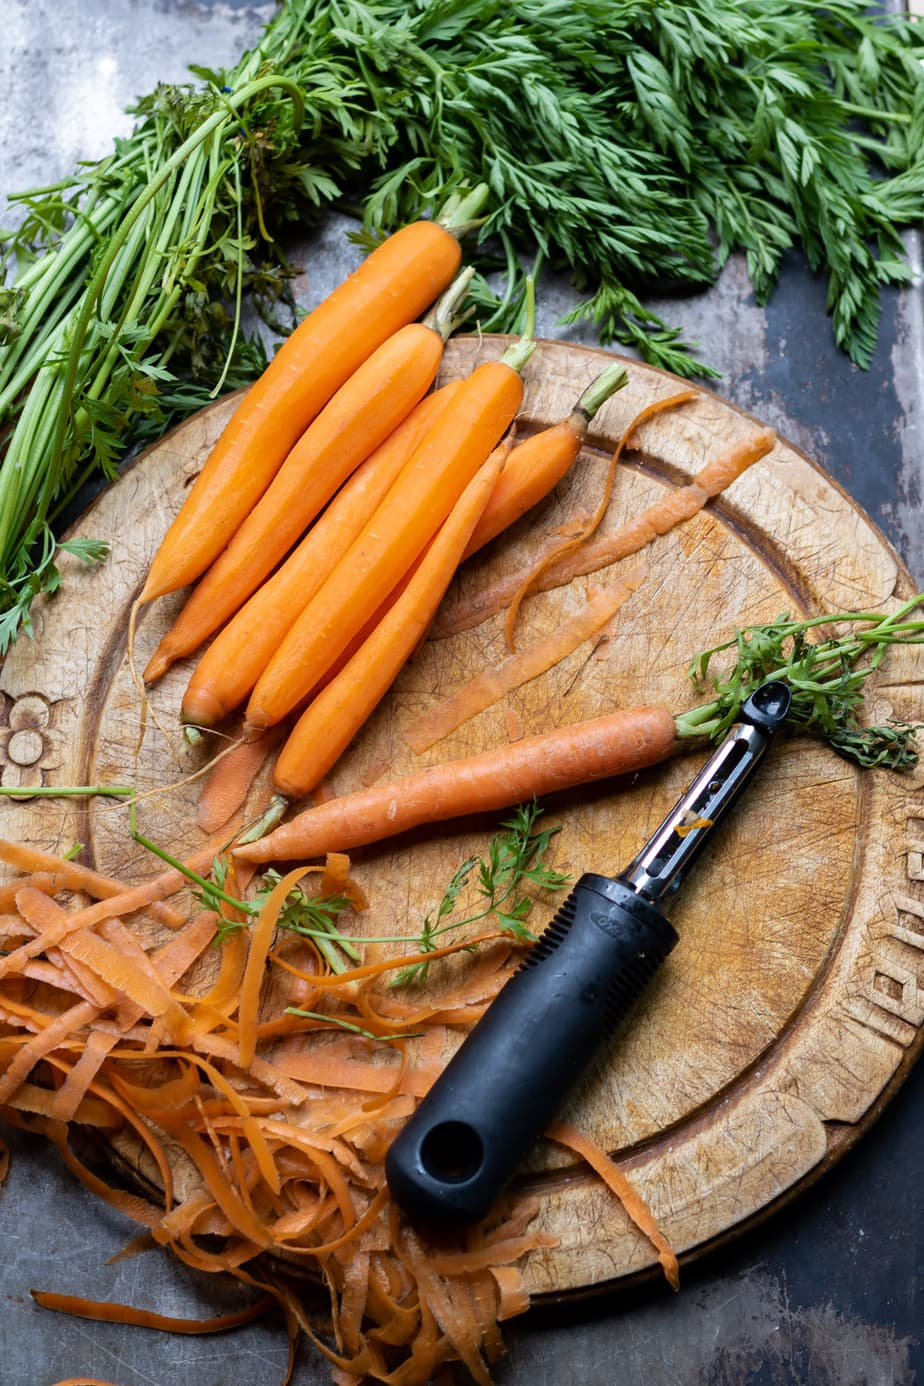 Carrots being peeled on a board.